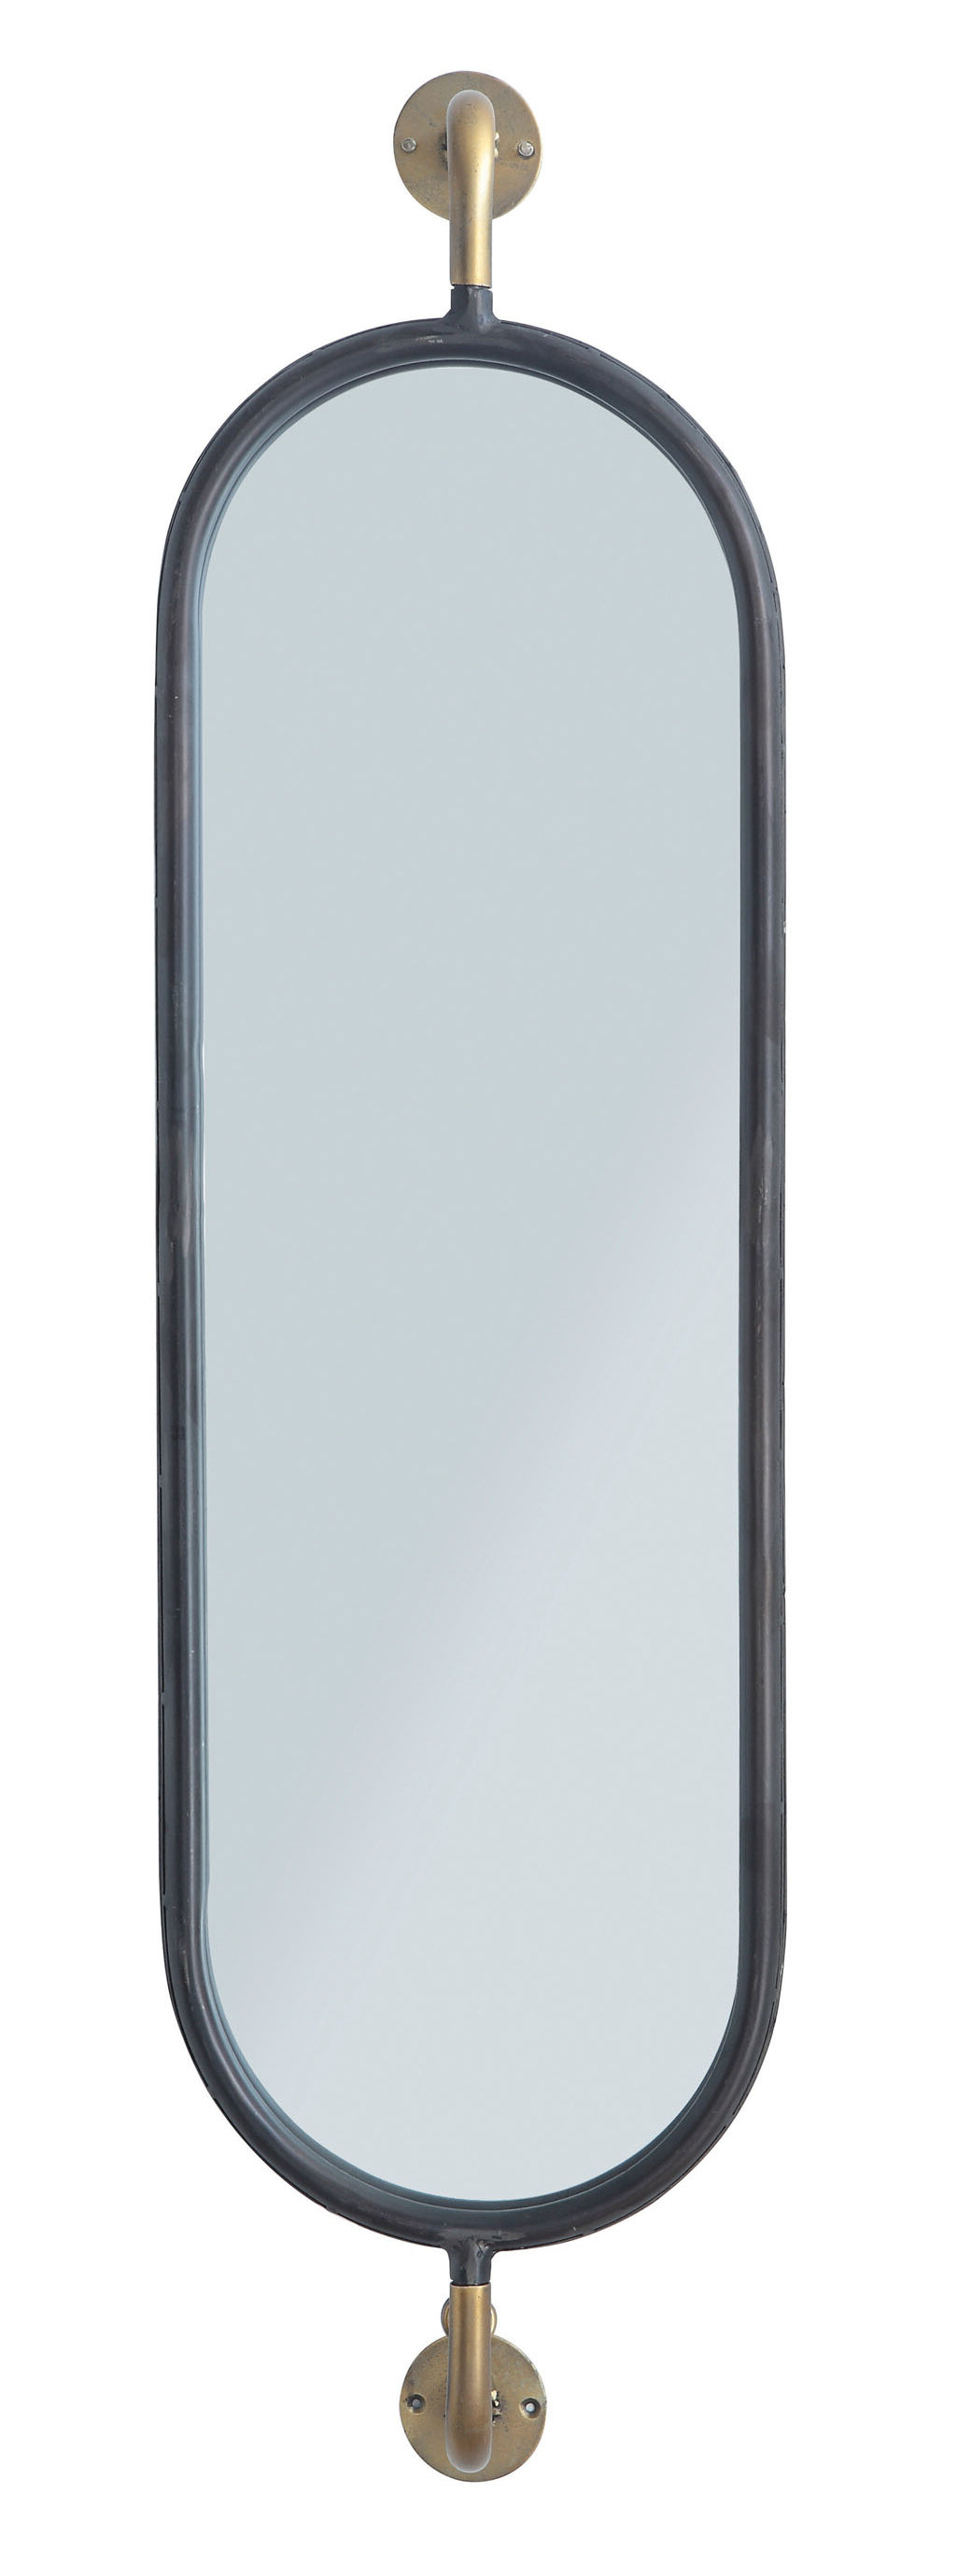 Most Popular Kadyn Modern & Contemporary Accent Mirror Inside Knott Modern & Contemporary Accent Mirrors (View 5 of 20)